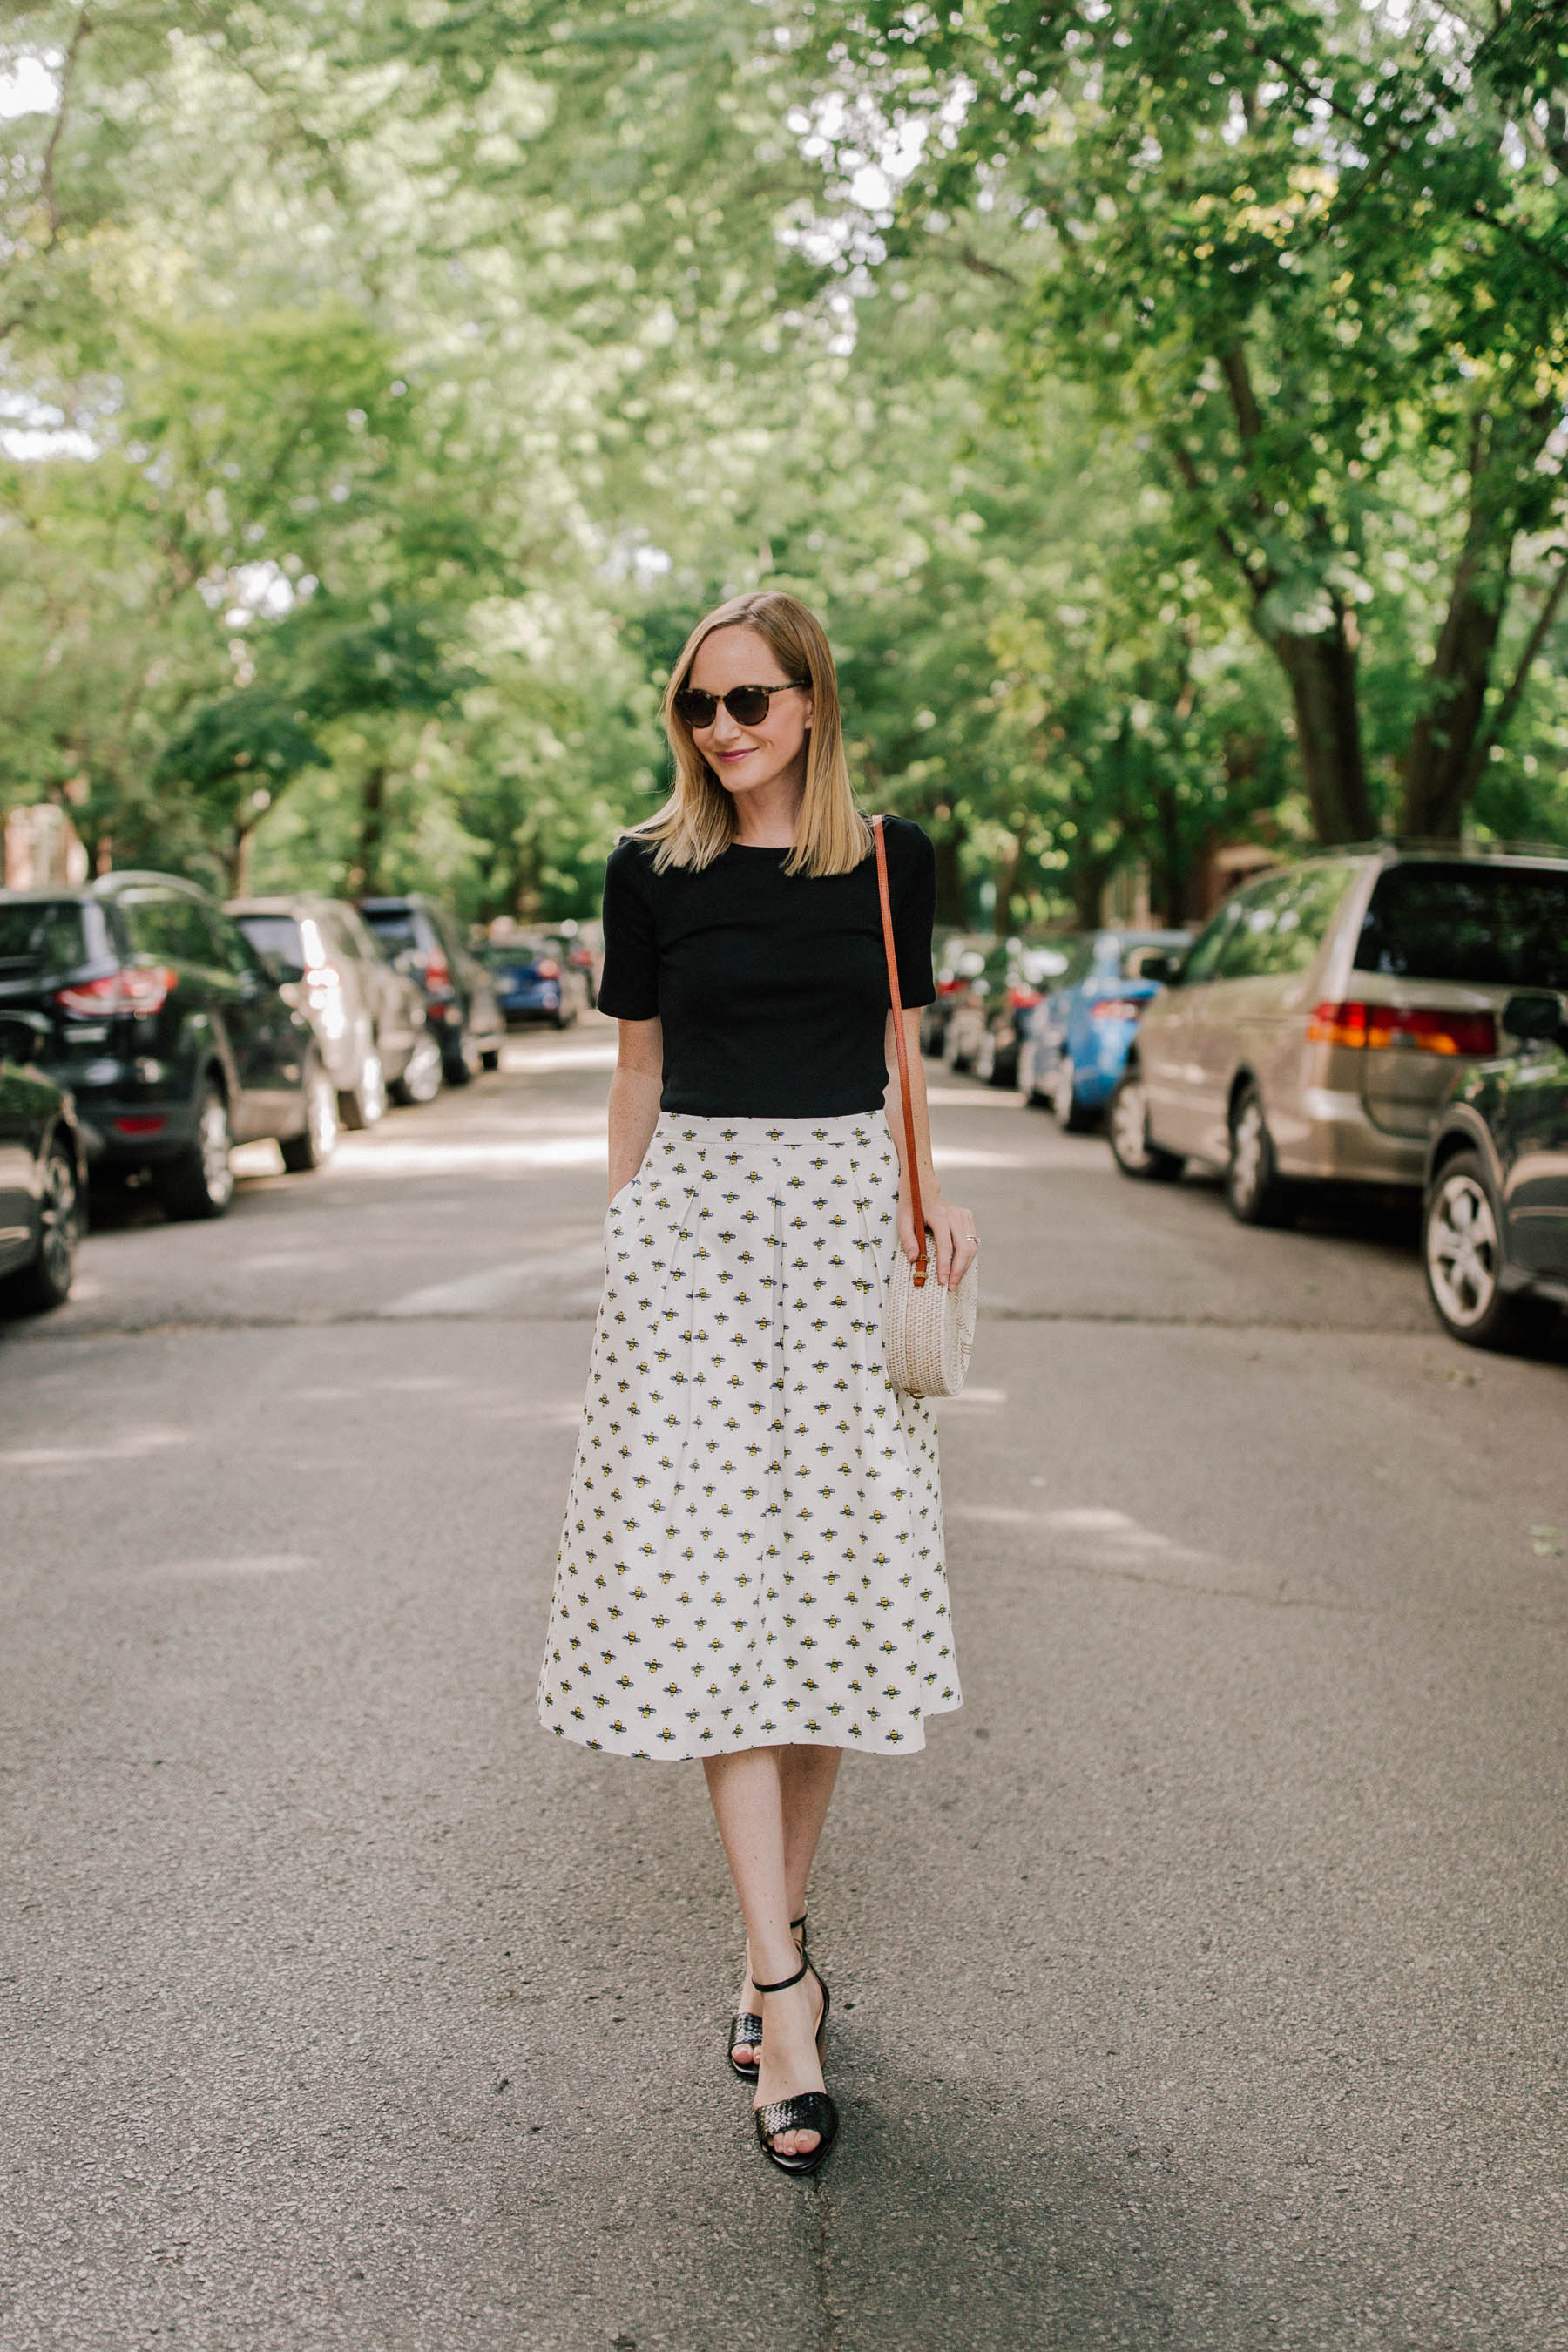 Bee Skirt(Also available at Boden.) / Perfect Tee / Current Favorite Black Sale Sandals / woven bag - Kelly in the City